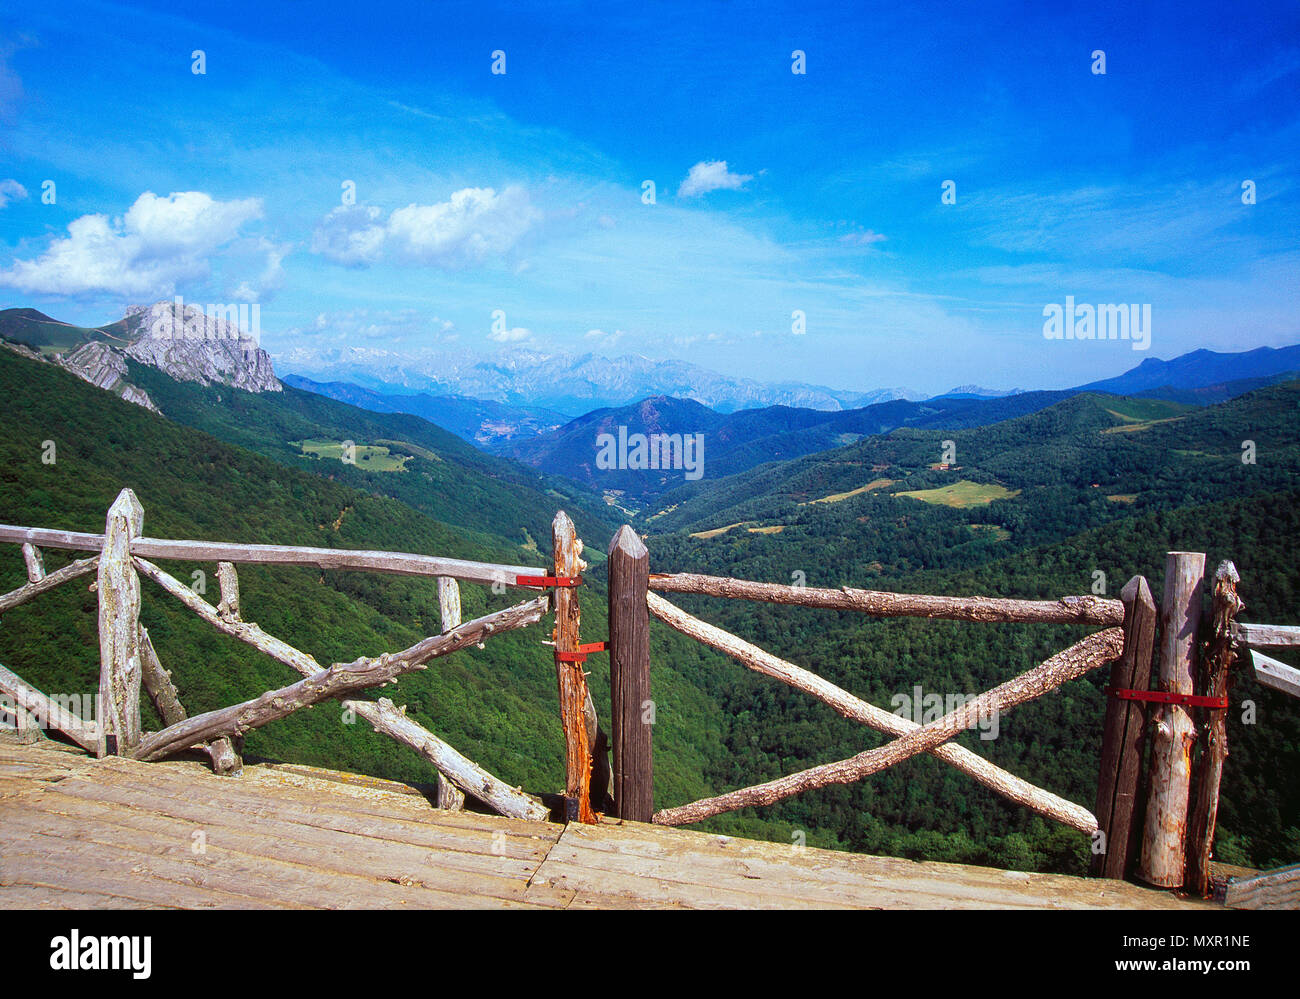 Piedrasluengas viewpoint over Liebana valley and Picos de Europa National Park. Palencia province, Castilla Leon, Spain. - Stock Image